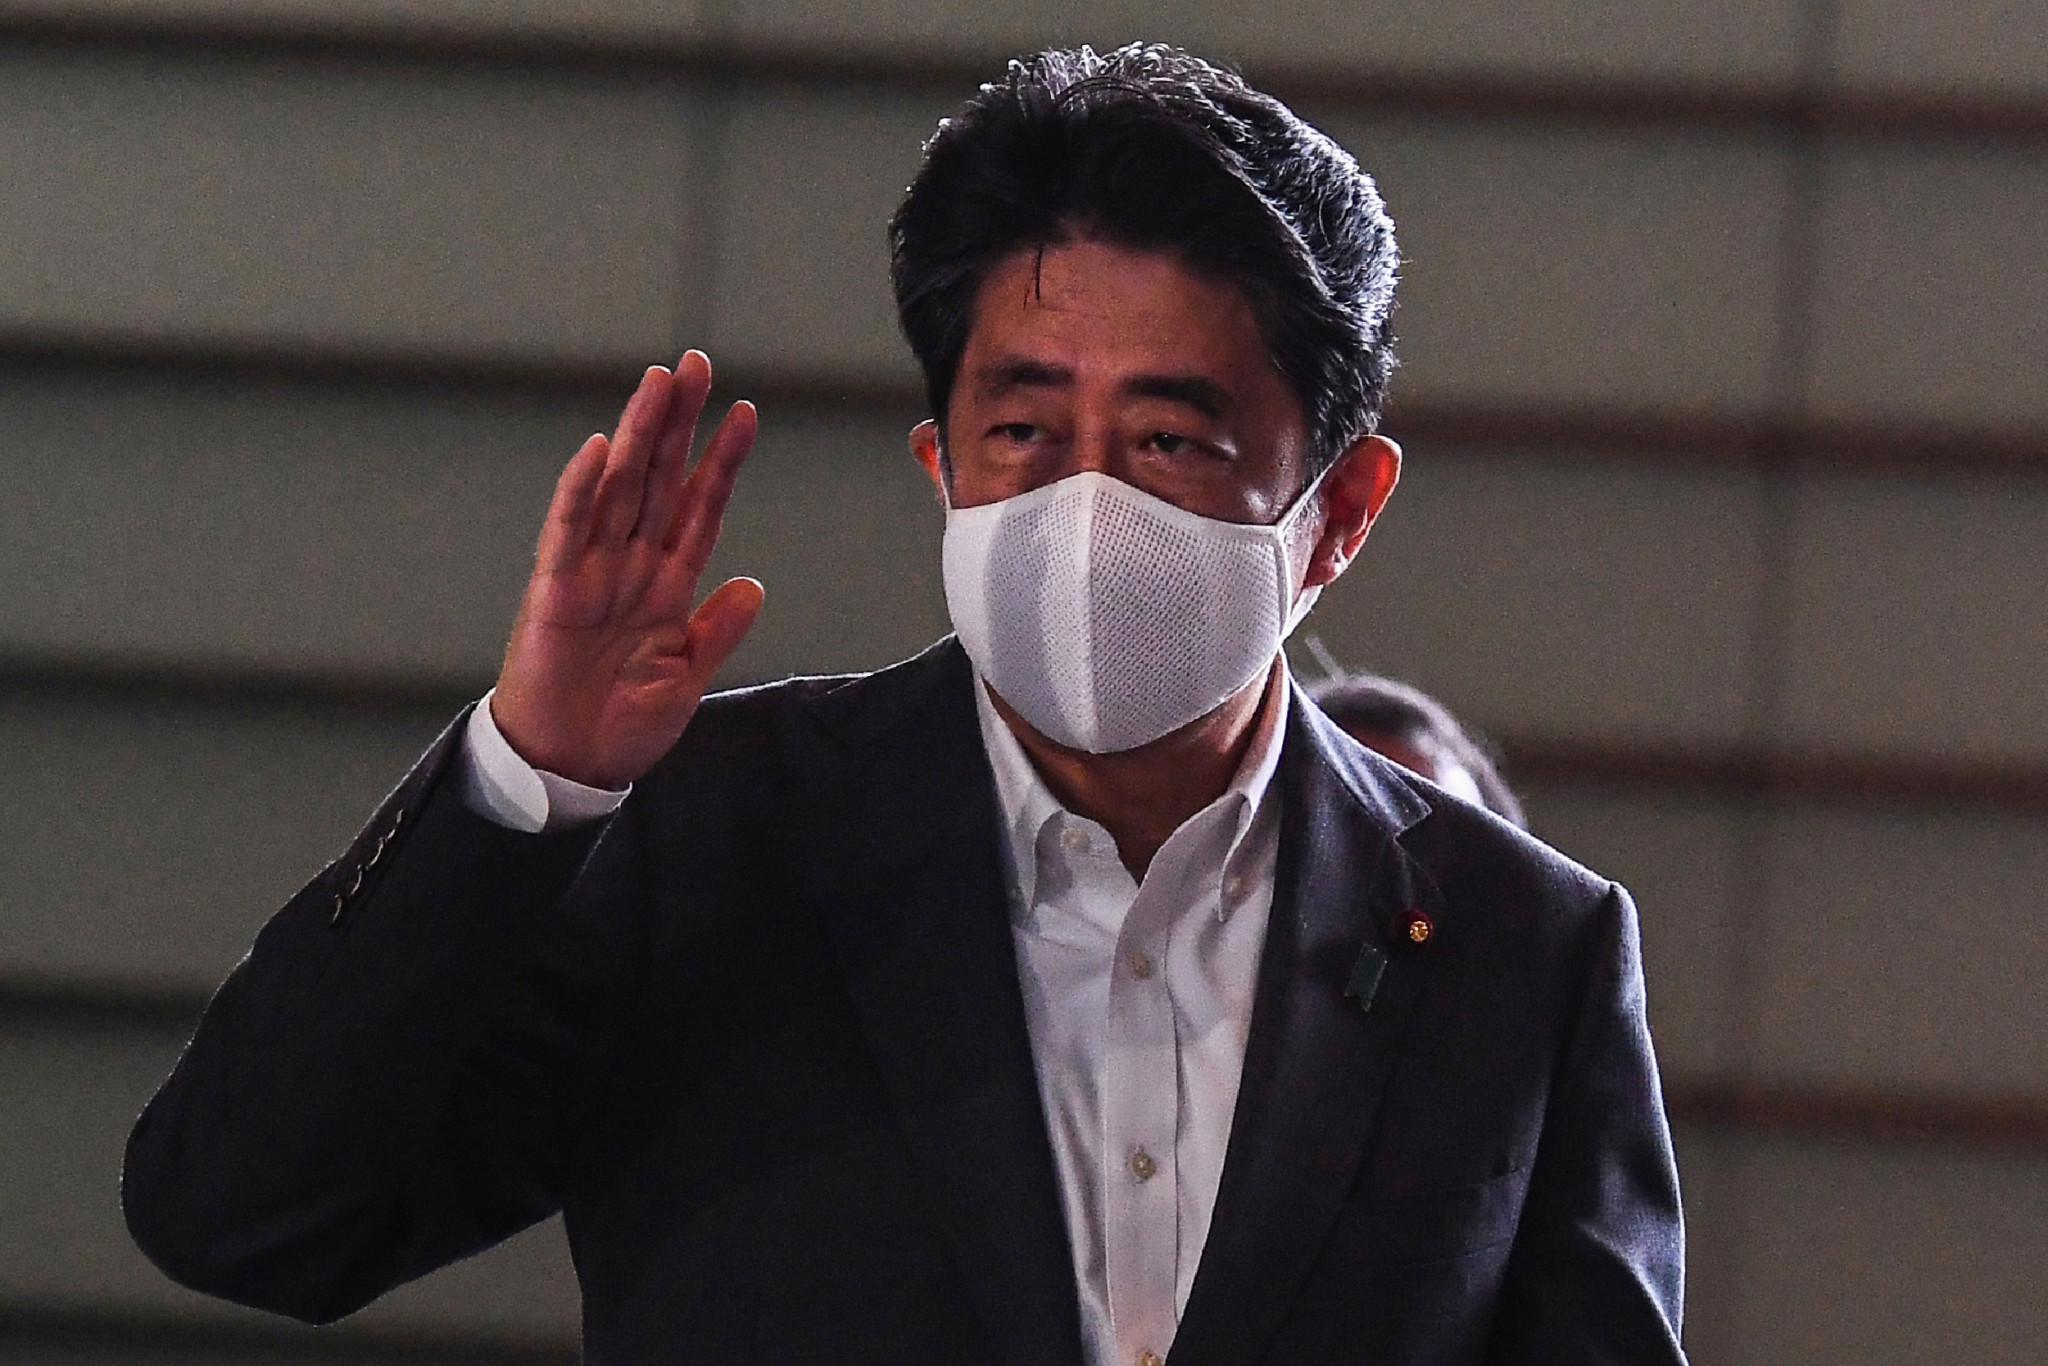 Liberal Democratic Party to vote on successor for Japanese Prime Minister Abe on September 14